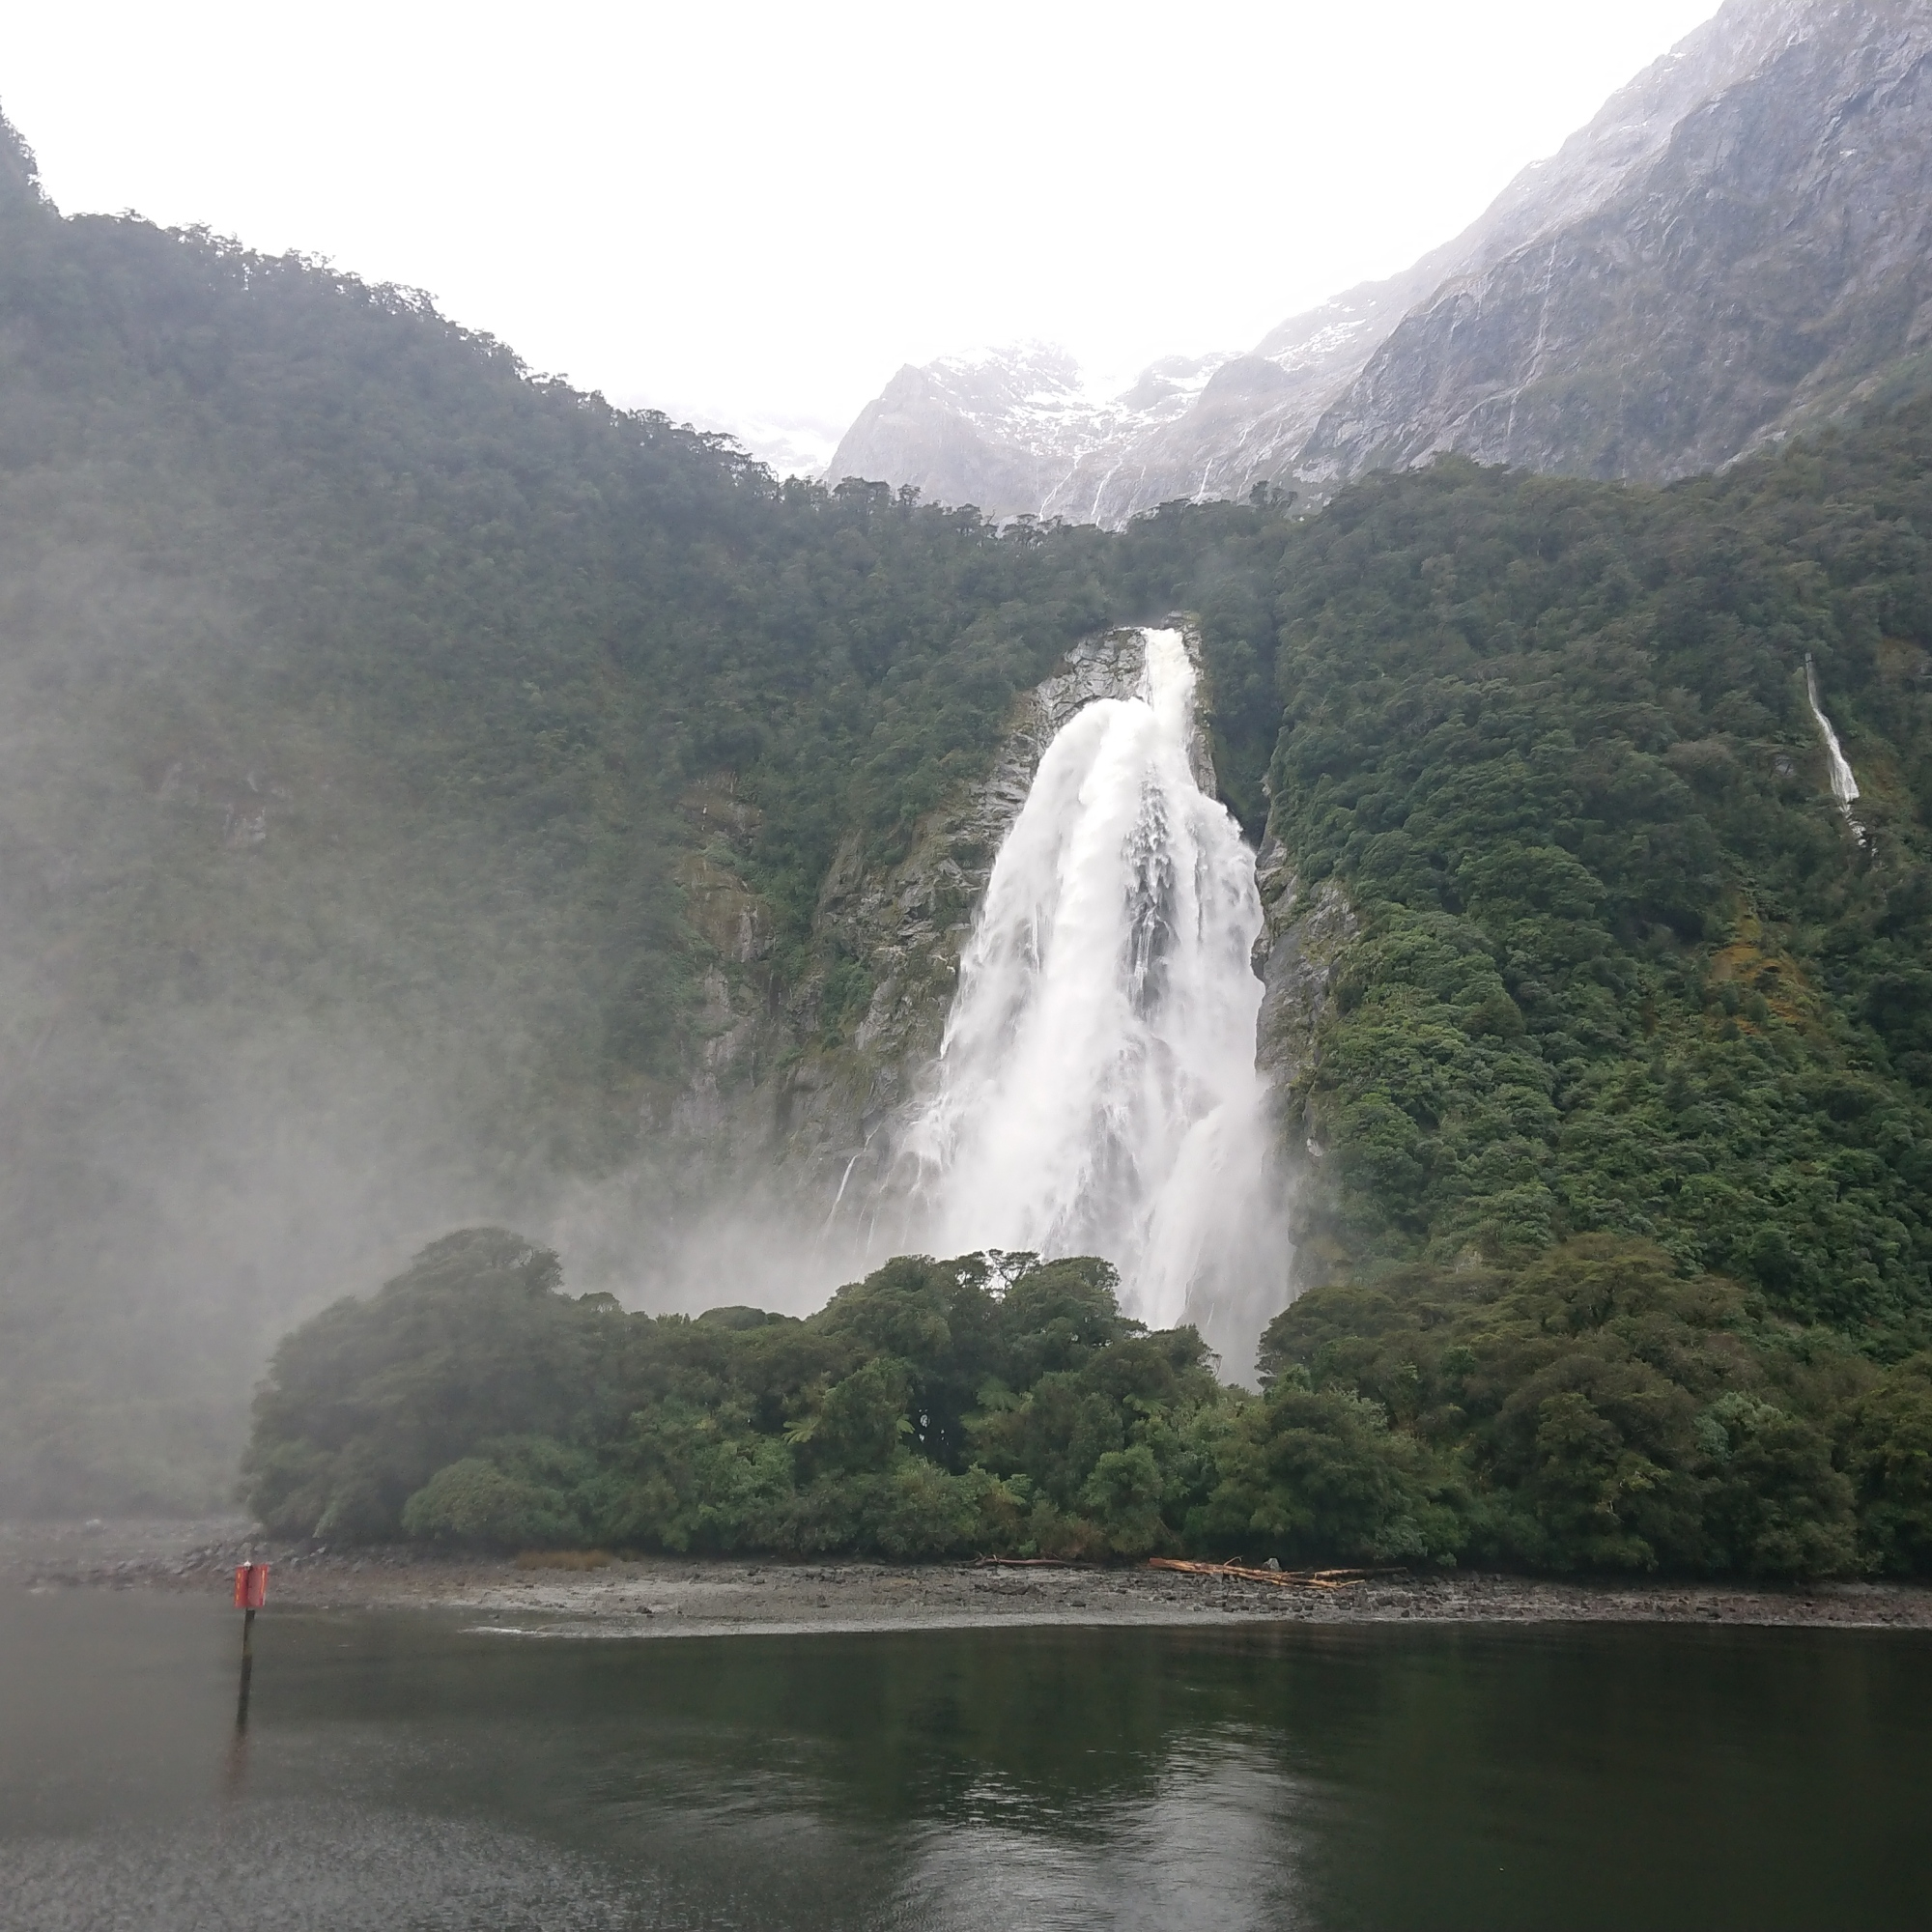 The first permanent waterfall in Milford Sound